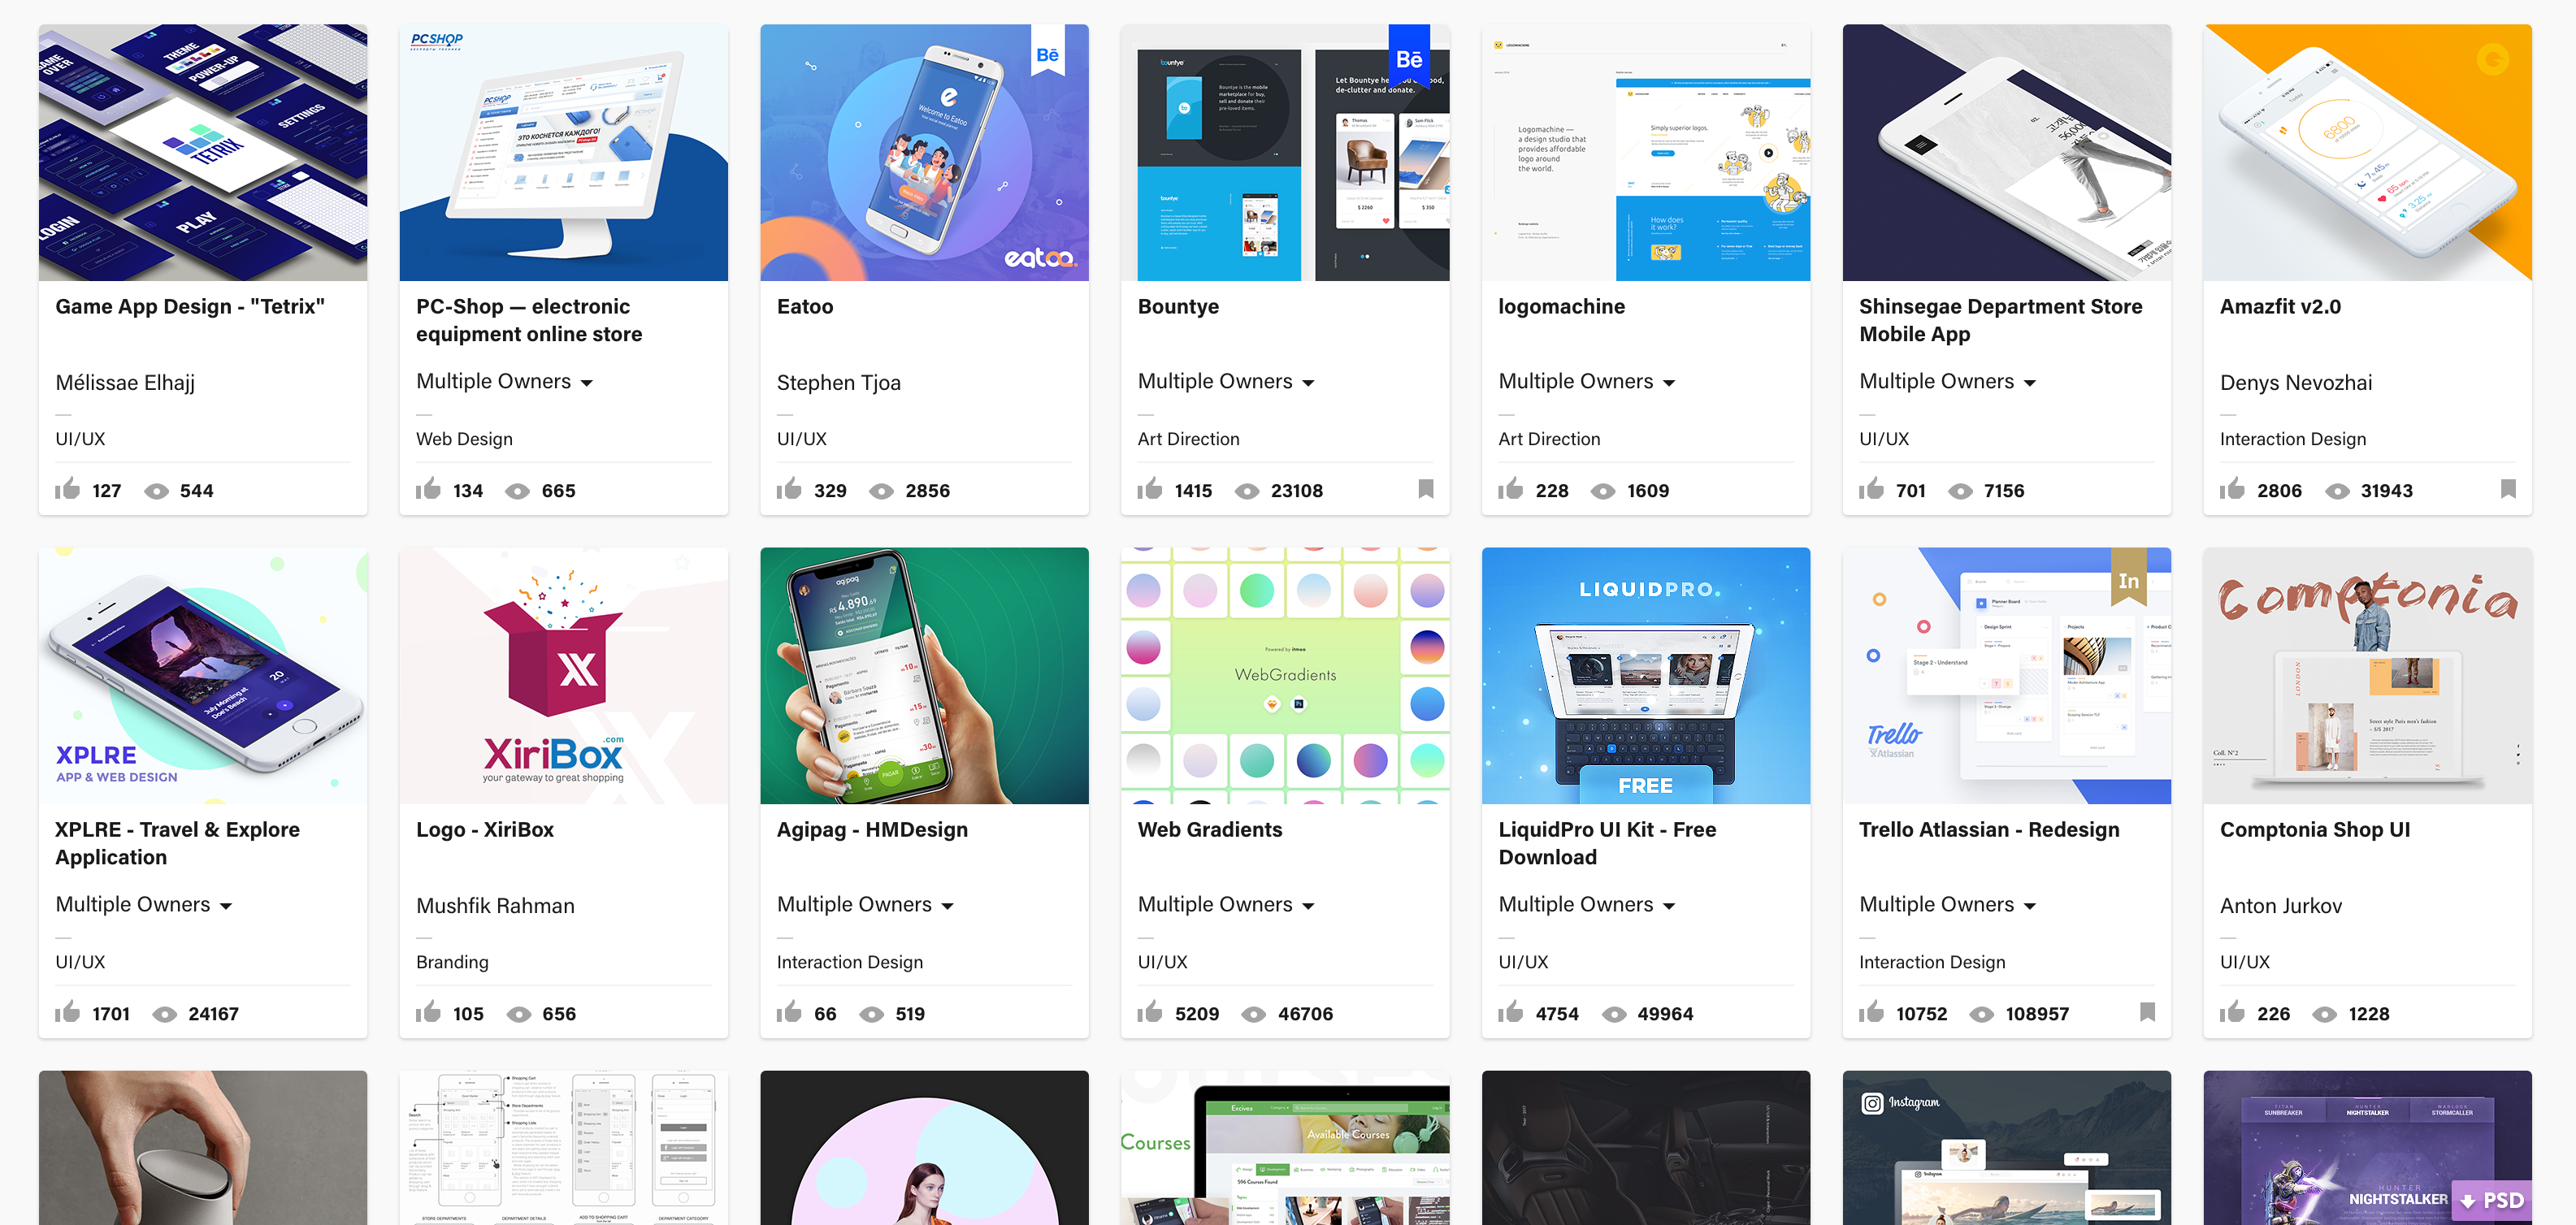 Behance UI/UX design front page